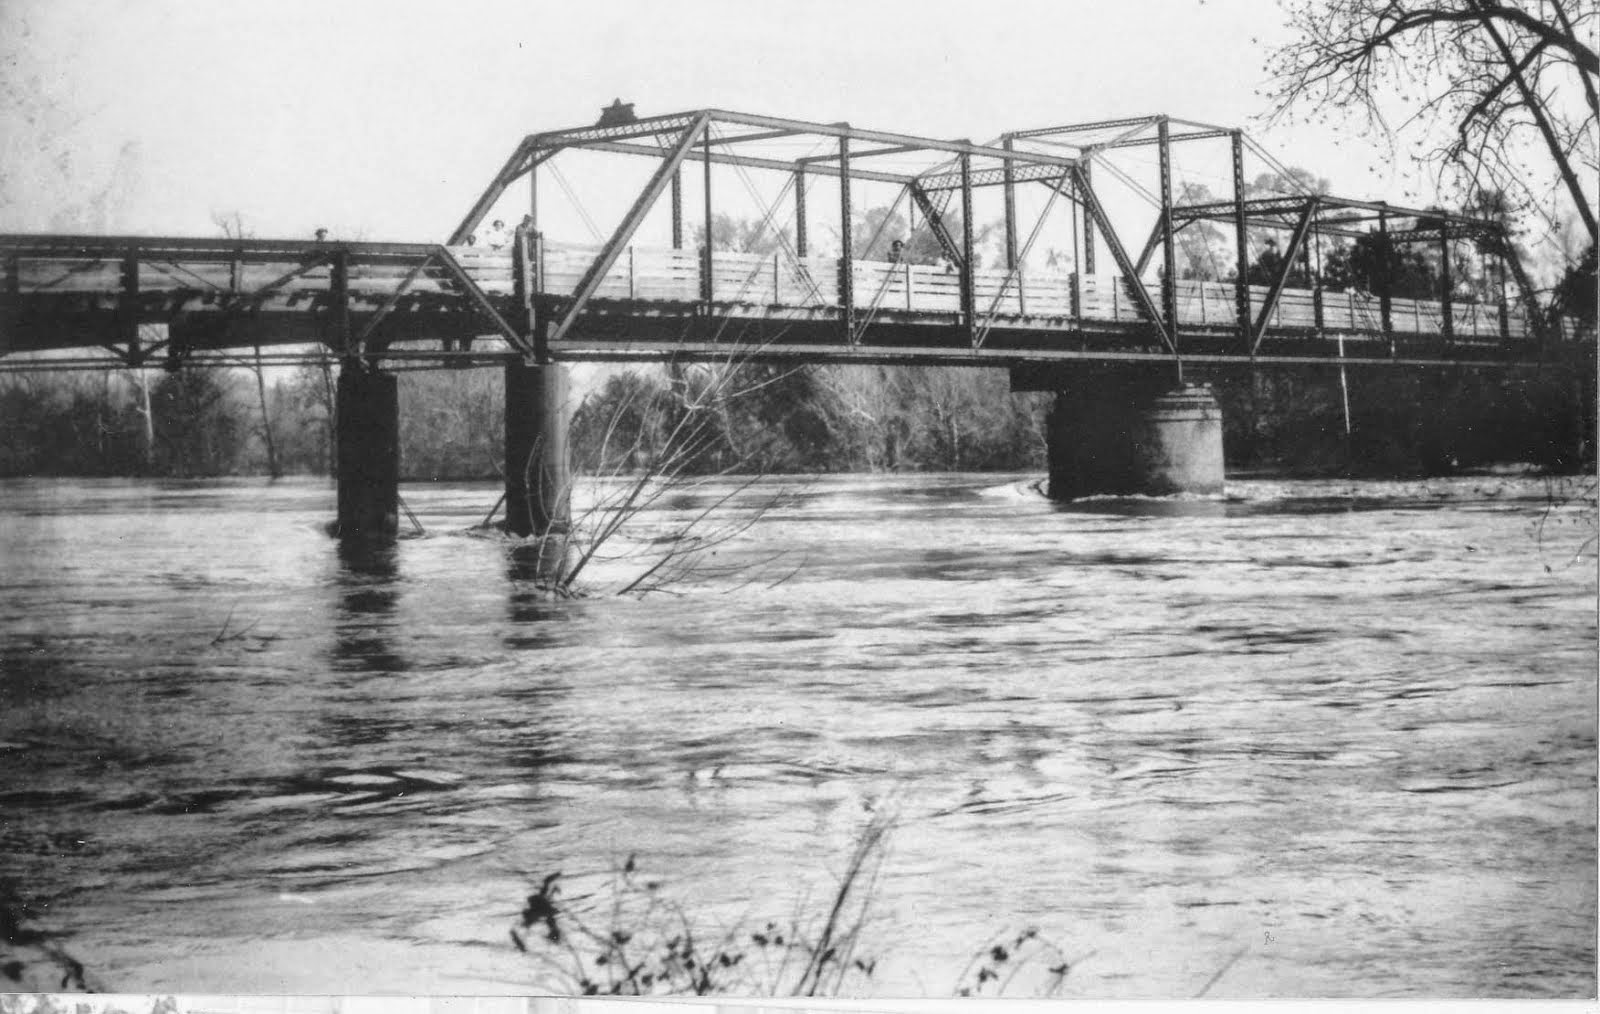 OCONEE RIVER BRIDGE, 1914